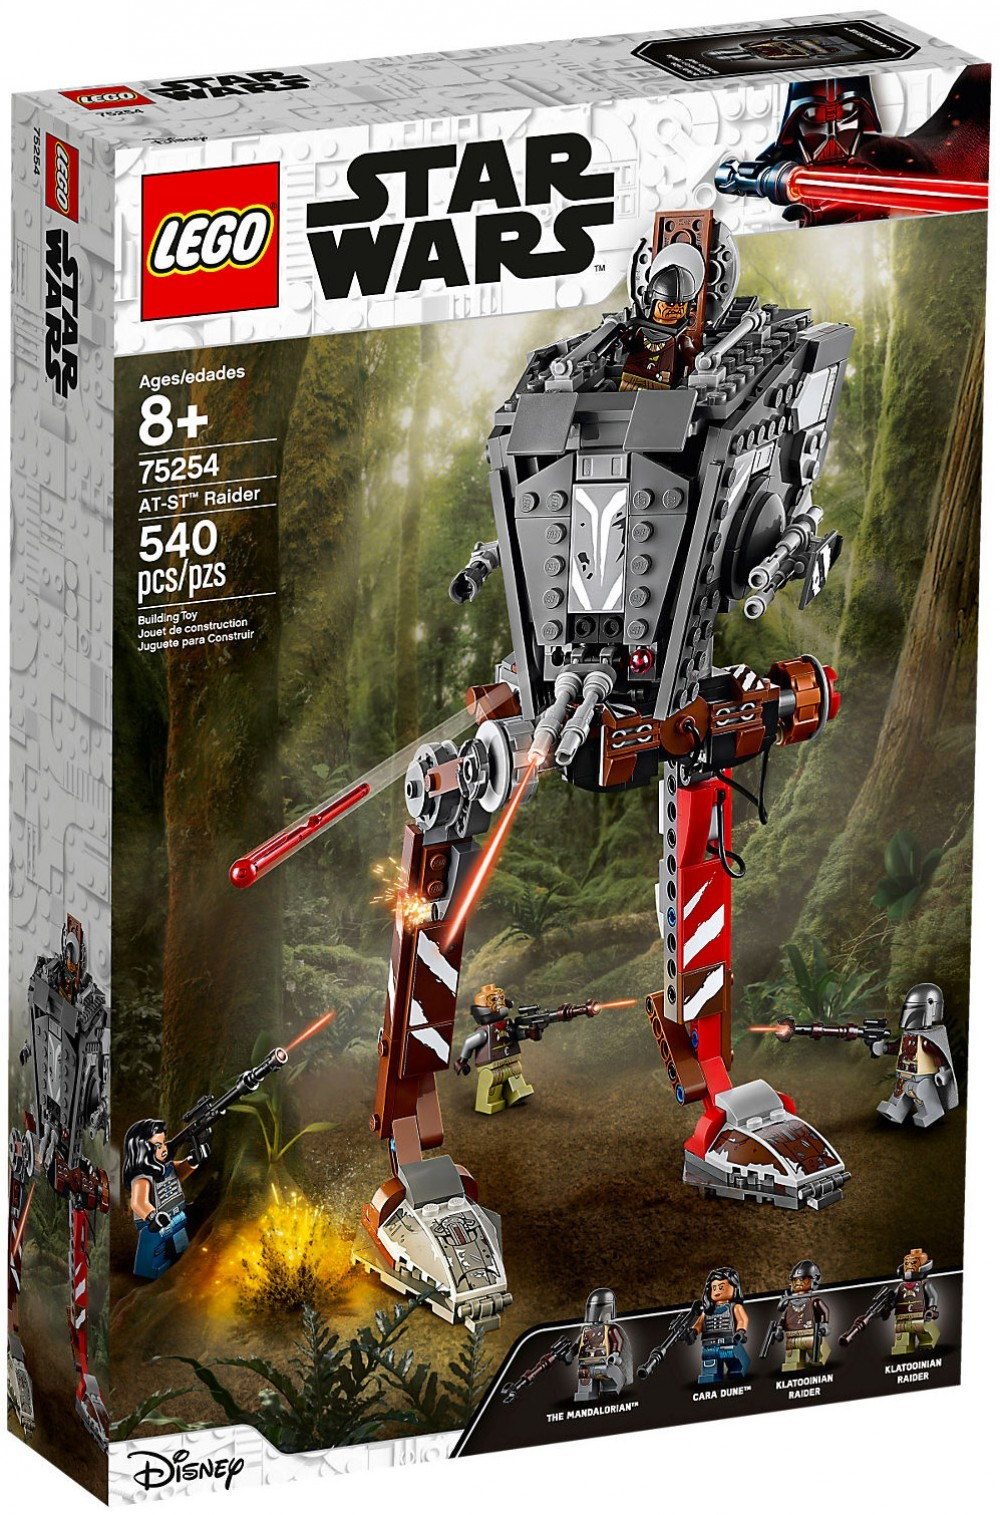 Nouveau LEGO Star Wars 75254 AT-ST Raider